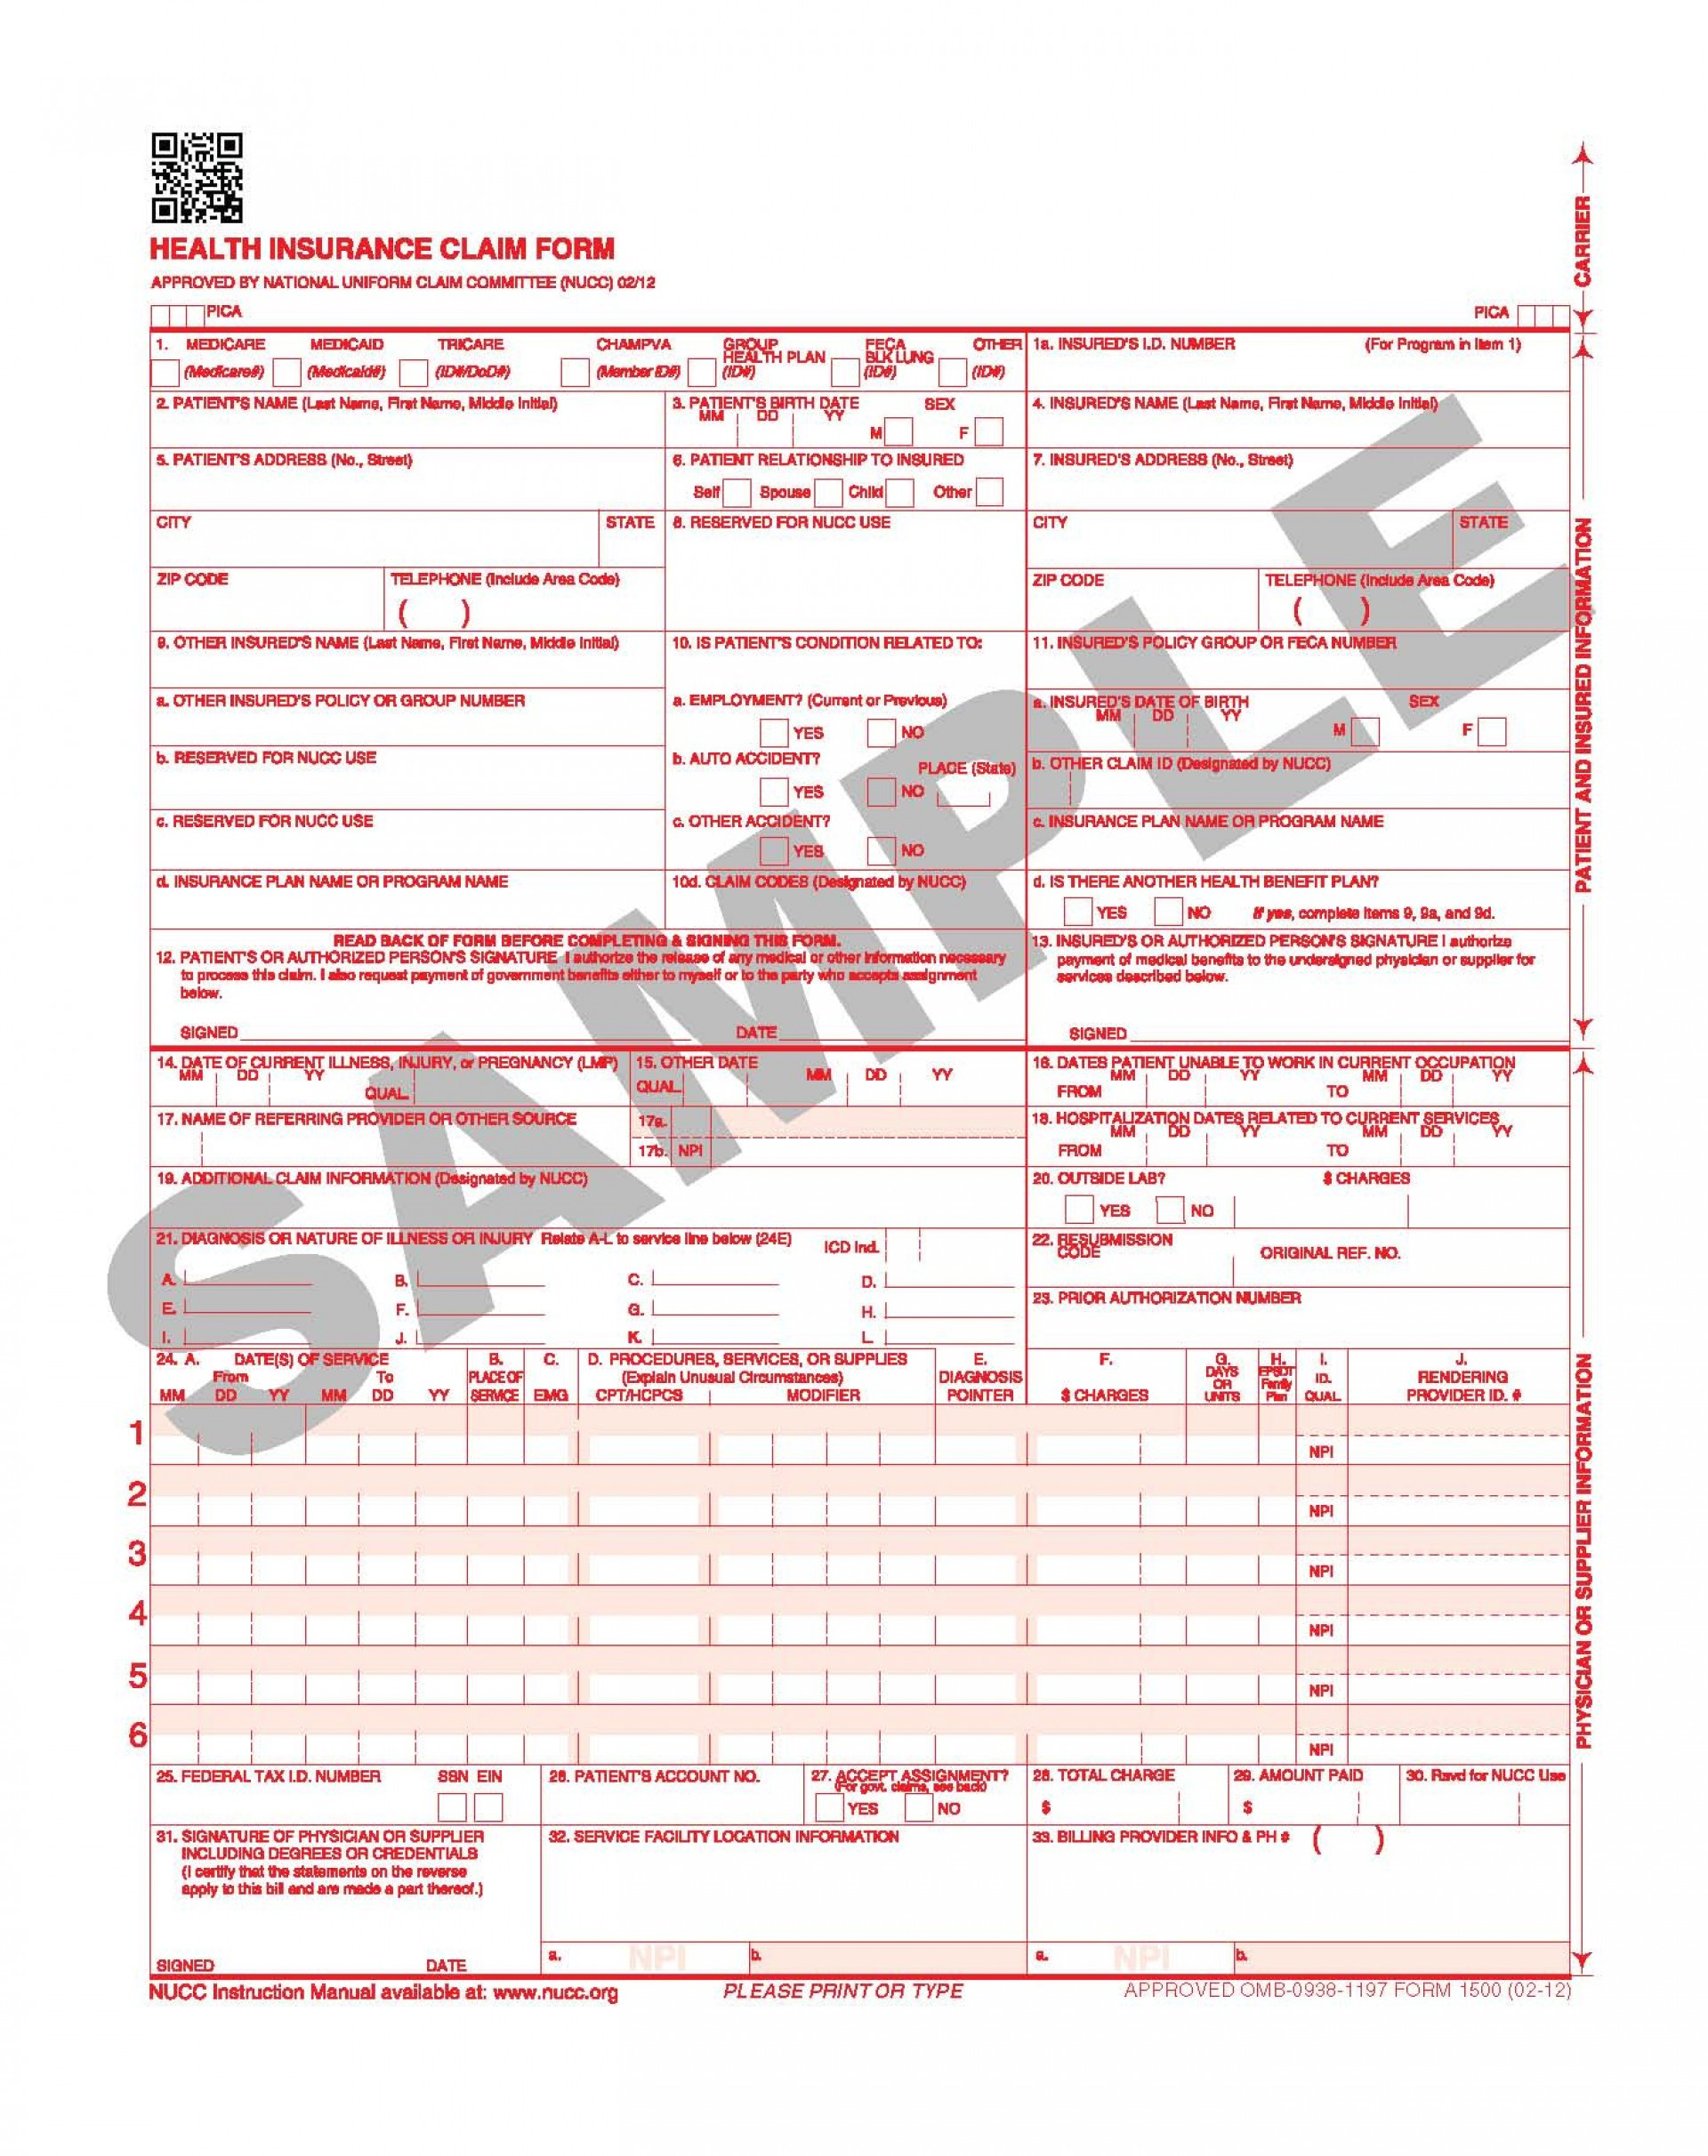 Free Blank Cms 1500 Claim Form New Claim Form Templates Rare 1500 02 12 Software Cms Fillable Download